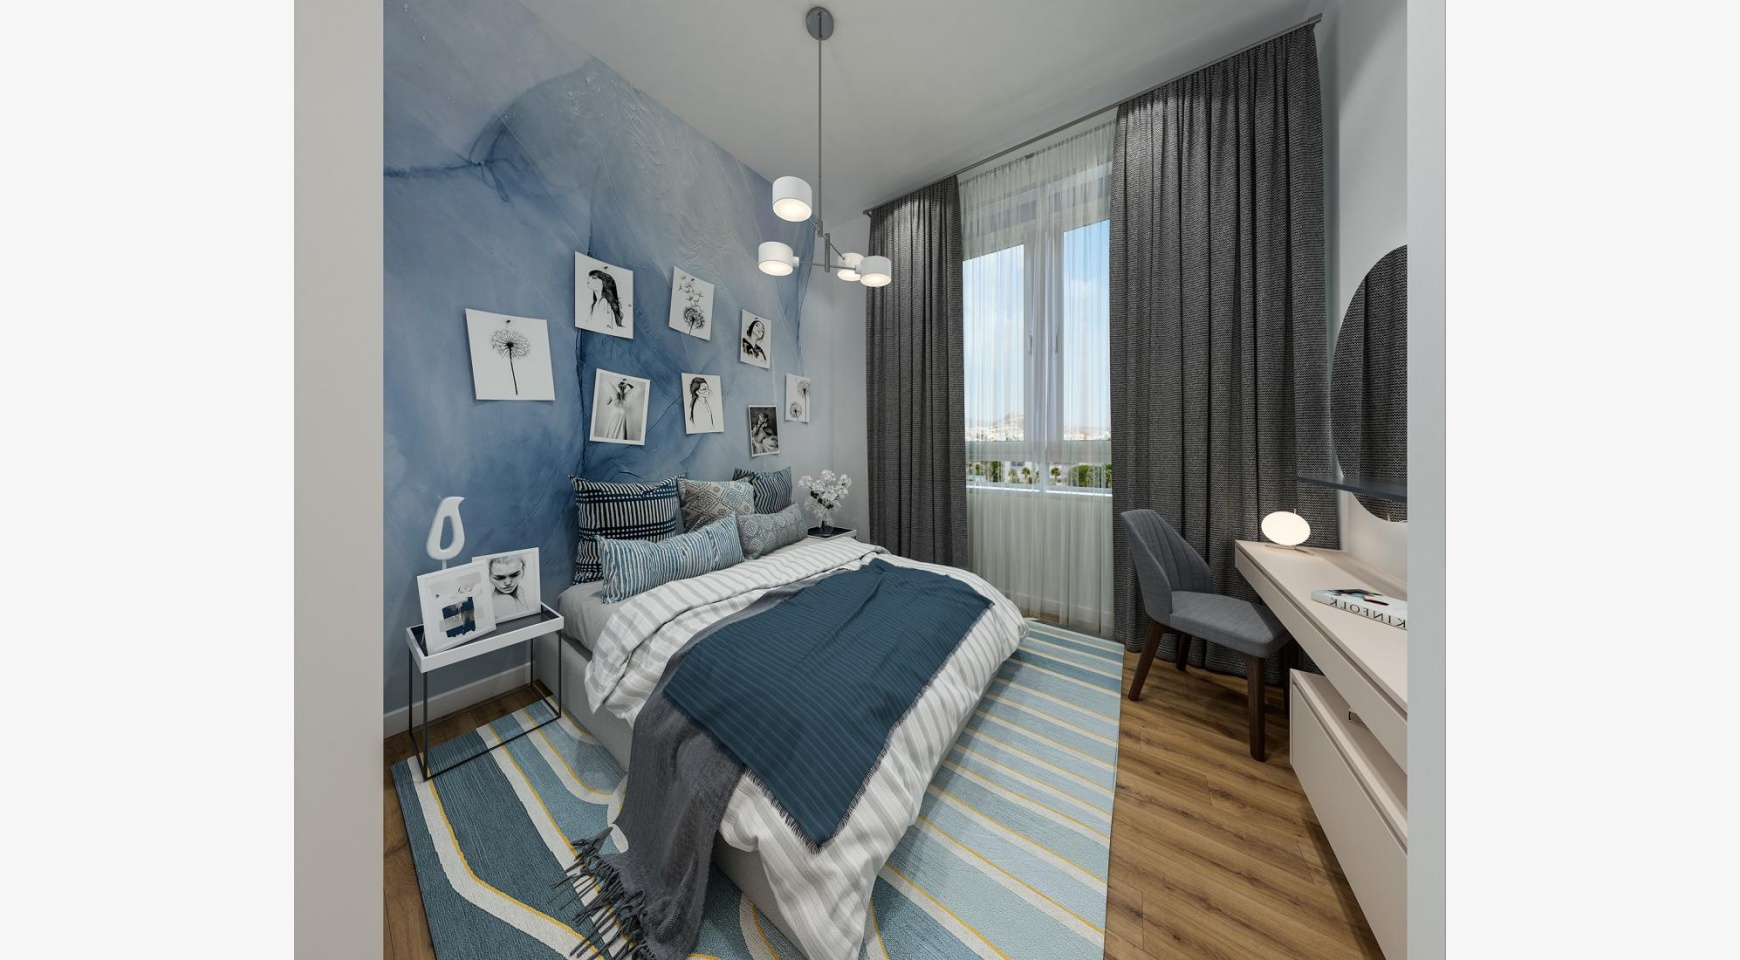 Urban City Residences, Block B. New Spacious 3 Bedroom Apartment 201 in the City Centre - 10